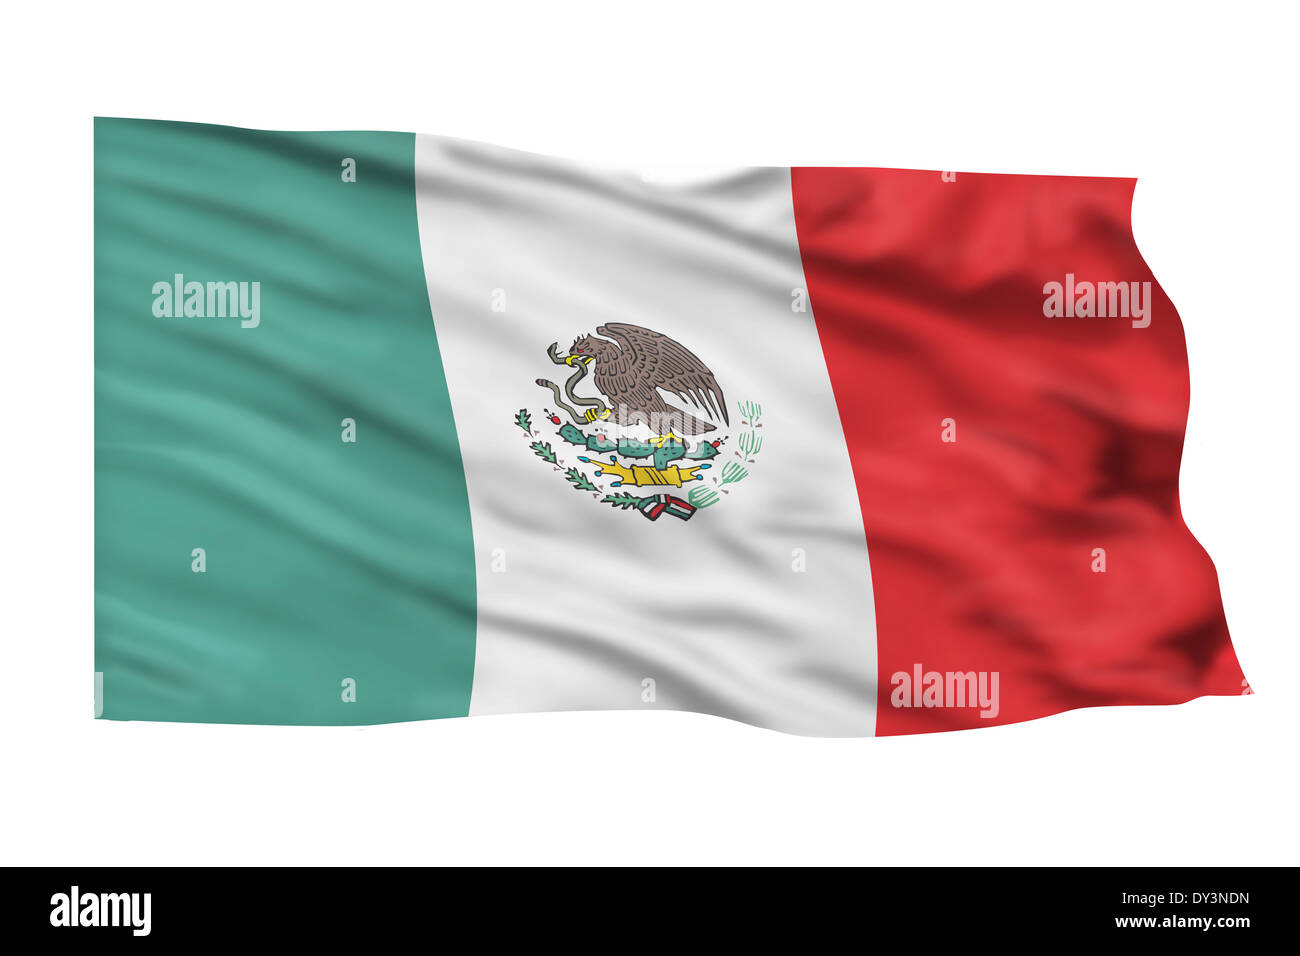 Mexico flag flying high in the sky. - Stock Image